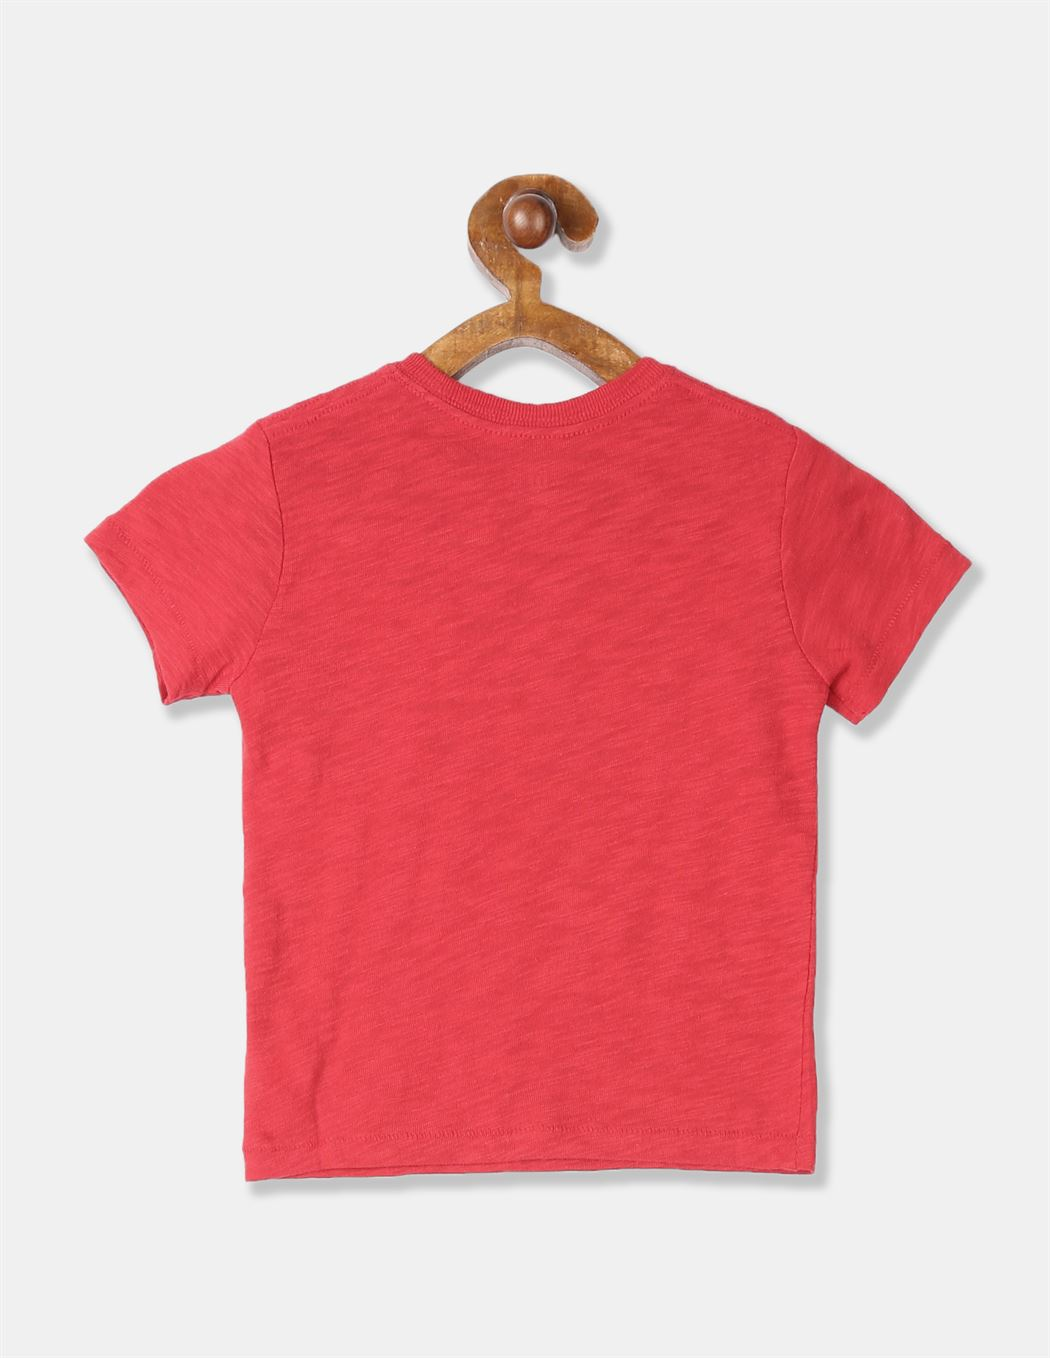 GAP Boys Red Applique T-Shirt